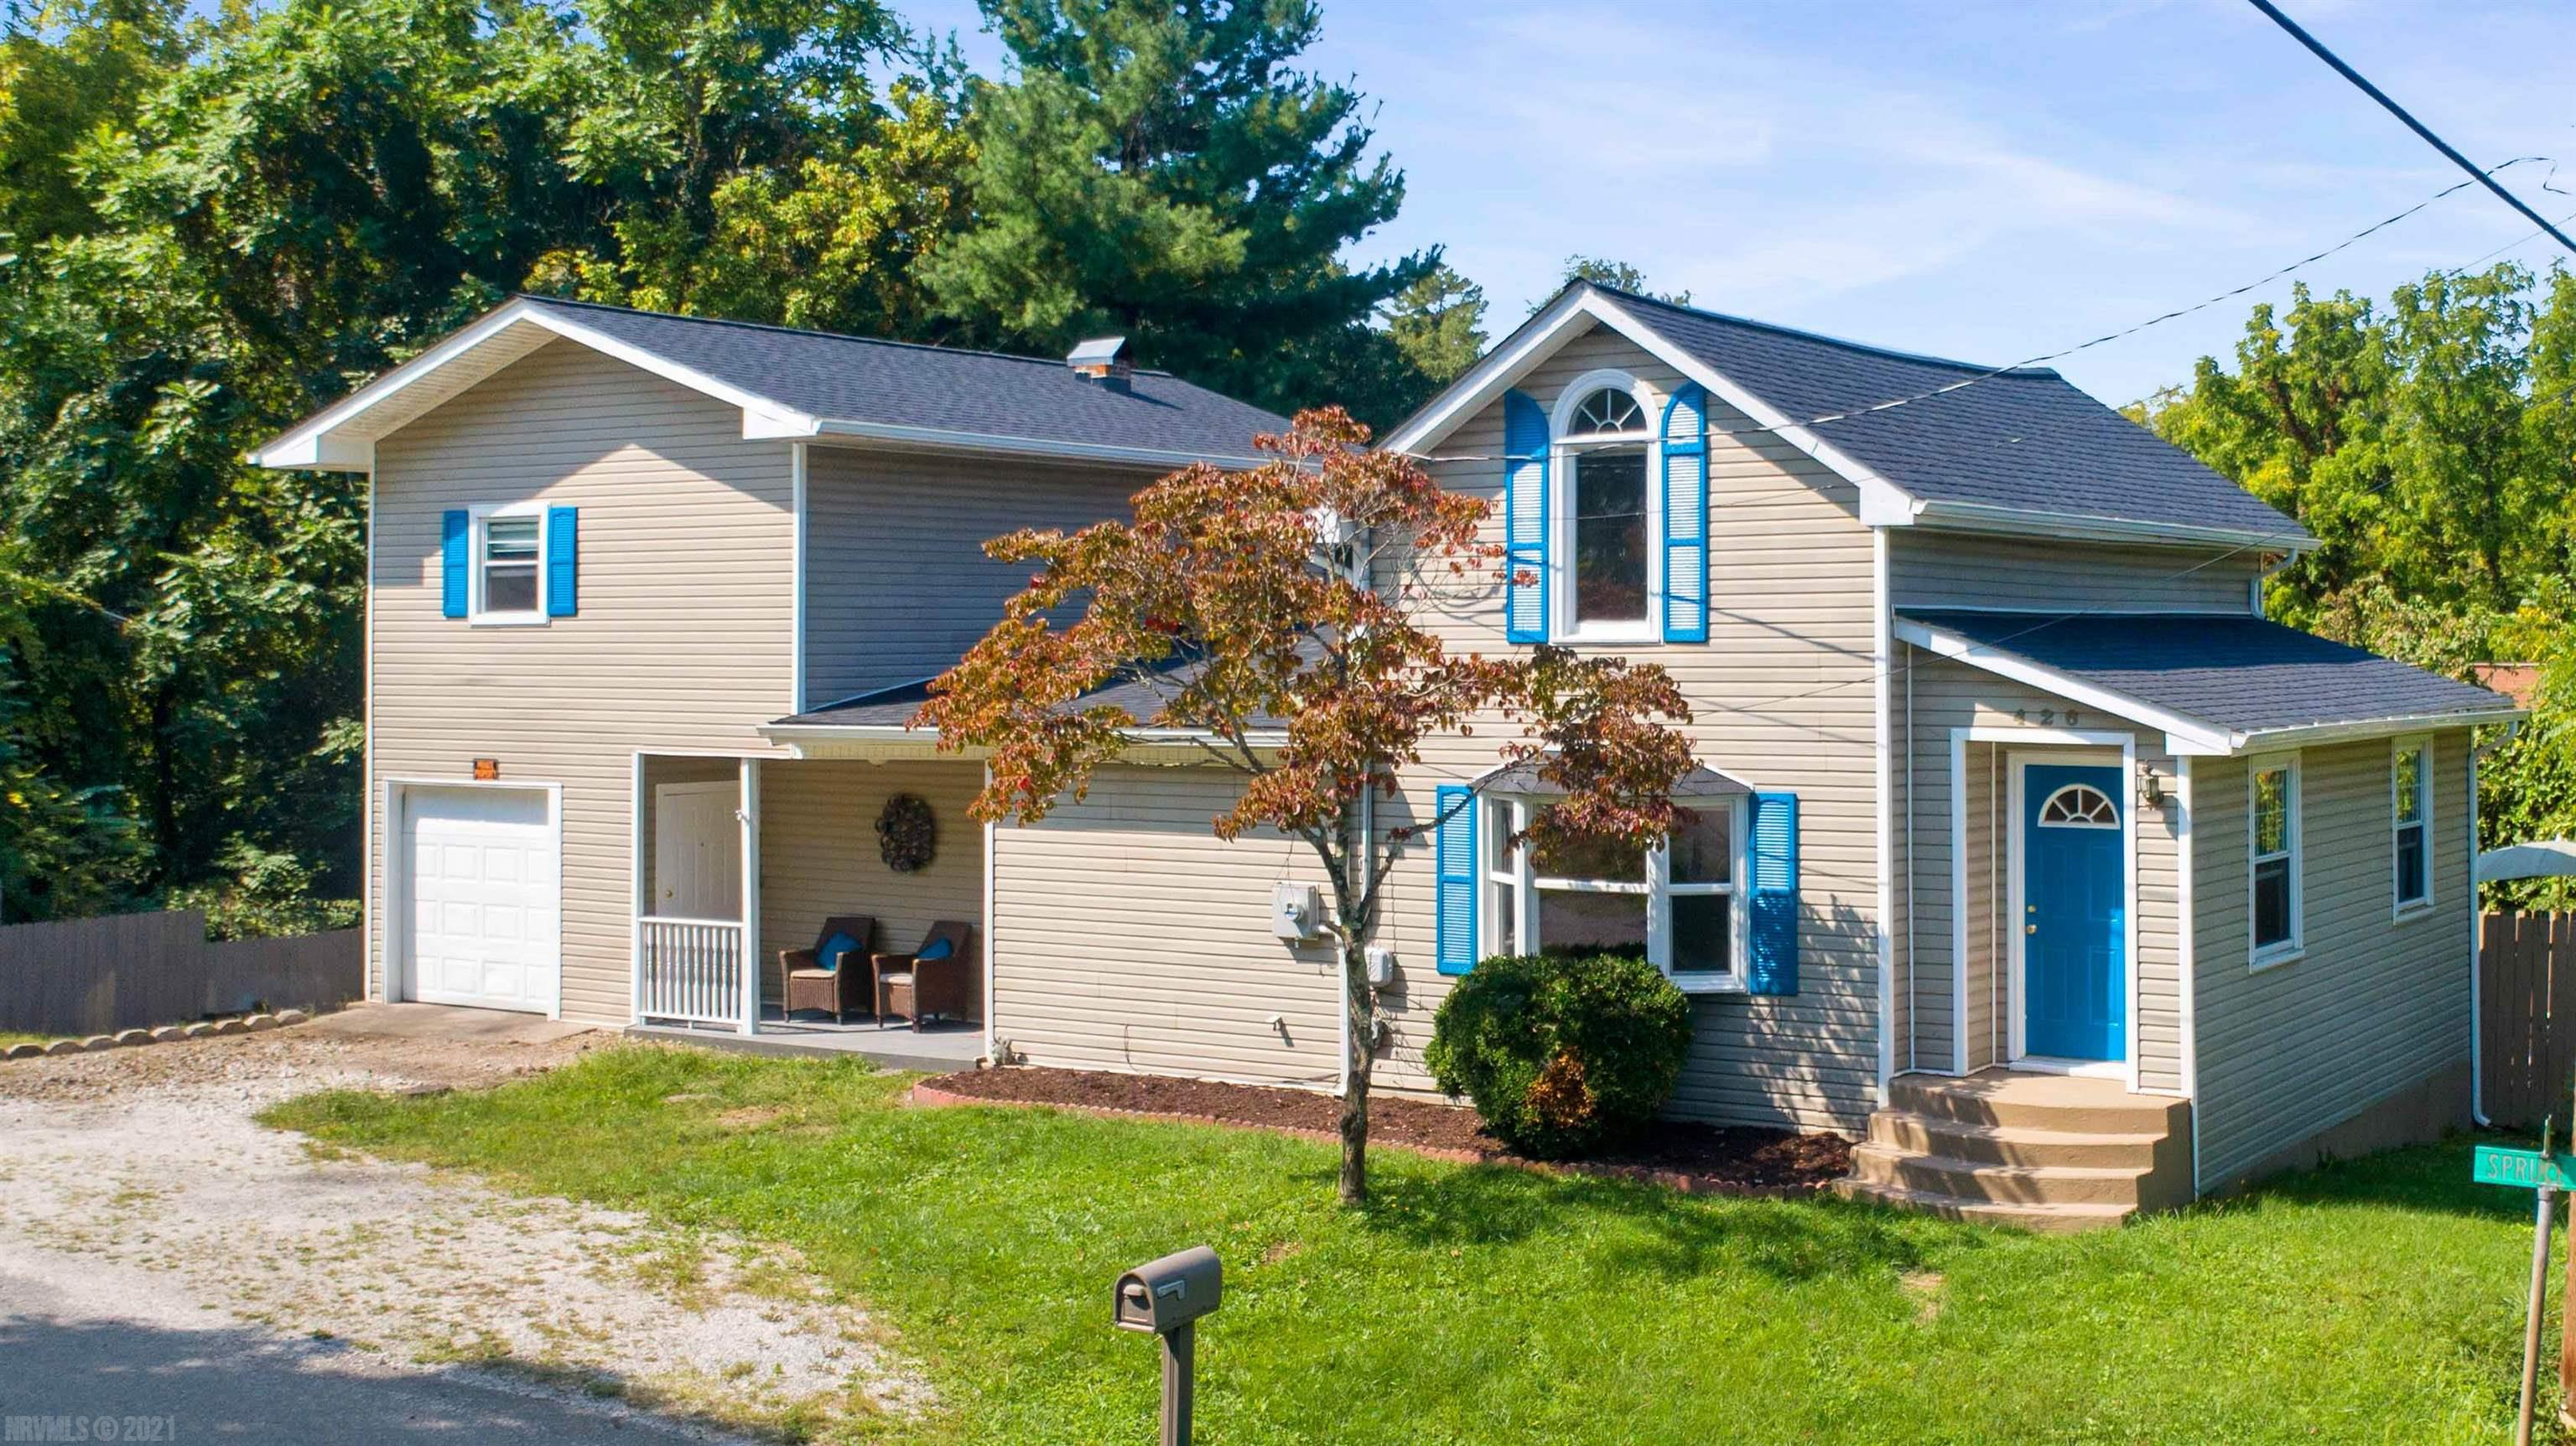 Seller will pay $5,000 for carpet Allowance or CC w/Full Price Offer!!!NEW Roof, NEW Guttering & NEW TREX FLOOR on Front Covered Porch-2021, REMODELED 3 BR & 2 Full Baths, 2 Story Home all ready for you to Move into. On Main Level-LARGE Living Rm, LARGE Kitchen Dining Rm, BR & 2 Full Baths. Master Bedroom upstairs on Left Side- plenty of room to add another Bath & Walk-In Closet. Large Bedroom upstairs on Right Side could be divided into 2 Bedrooms. Att Single Car Garage right off Front Covered Porch. Outside-Privacy Fence around Paver Patio for entertaining. OR, grill out on Your Deck Off the Dining Room. Very Cute Playhouse waiting for your Little Ones to Bring Their Toys & enjoy the Ladder to loft area.  Rnge, Ref., MW, & Front Loading Washer & Dryer Convey(Located on Main Level Off Kitchen). You will enjoy the Central Air on Those Hot Fall Days.   NEW Window - Kitchen & Upstairs Bedroom on Right Side. Stone Kitchen Flue has not been used & conveys as is. NEW Window Blinds convey.